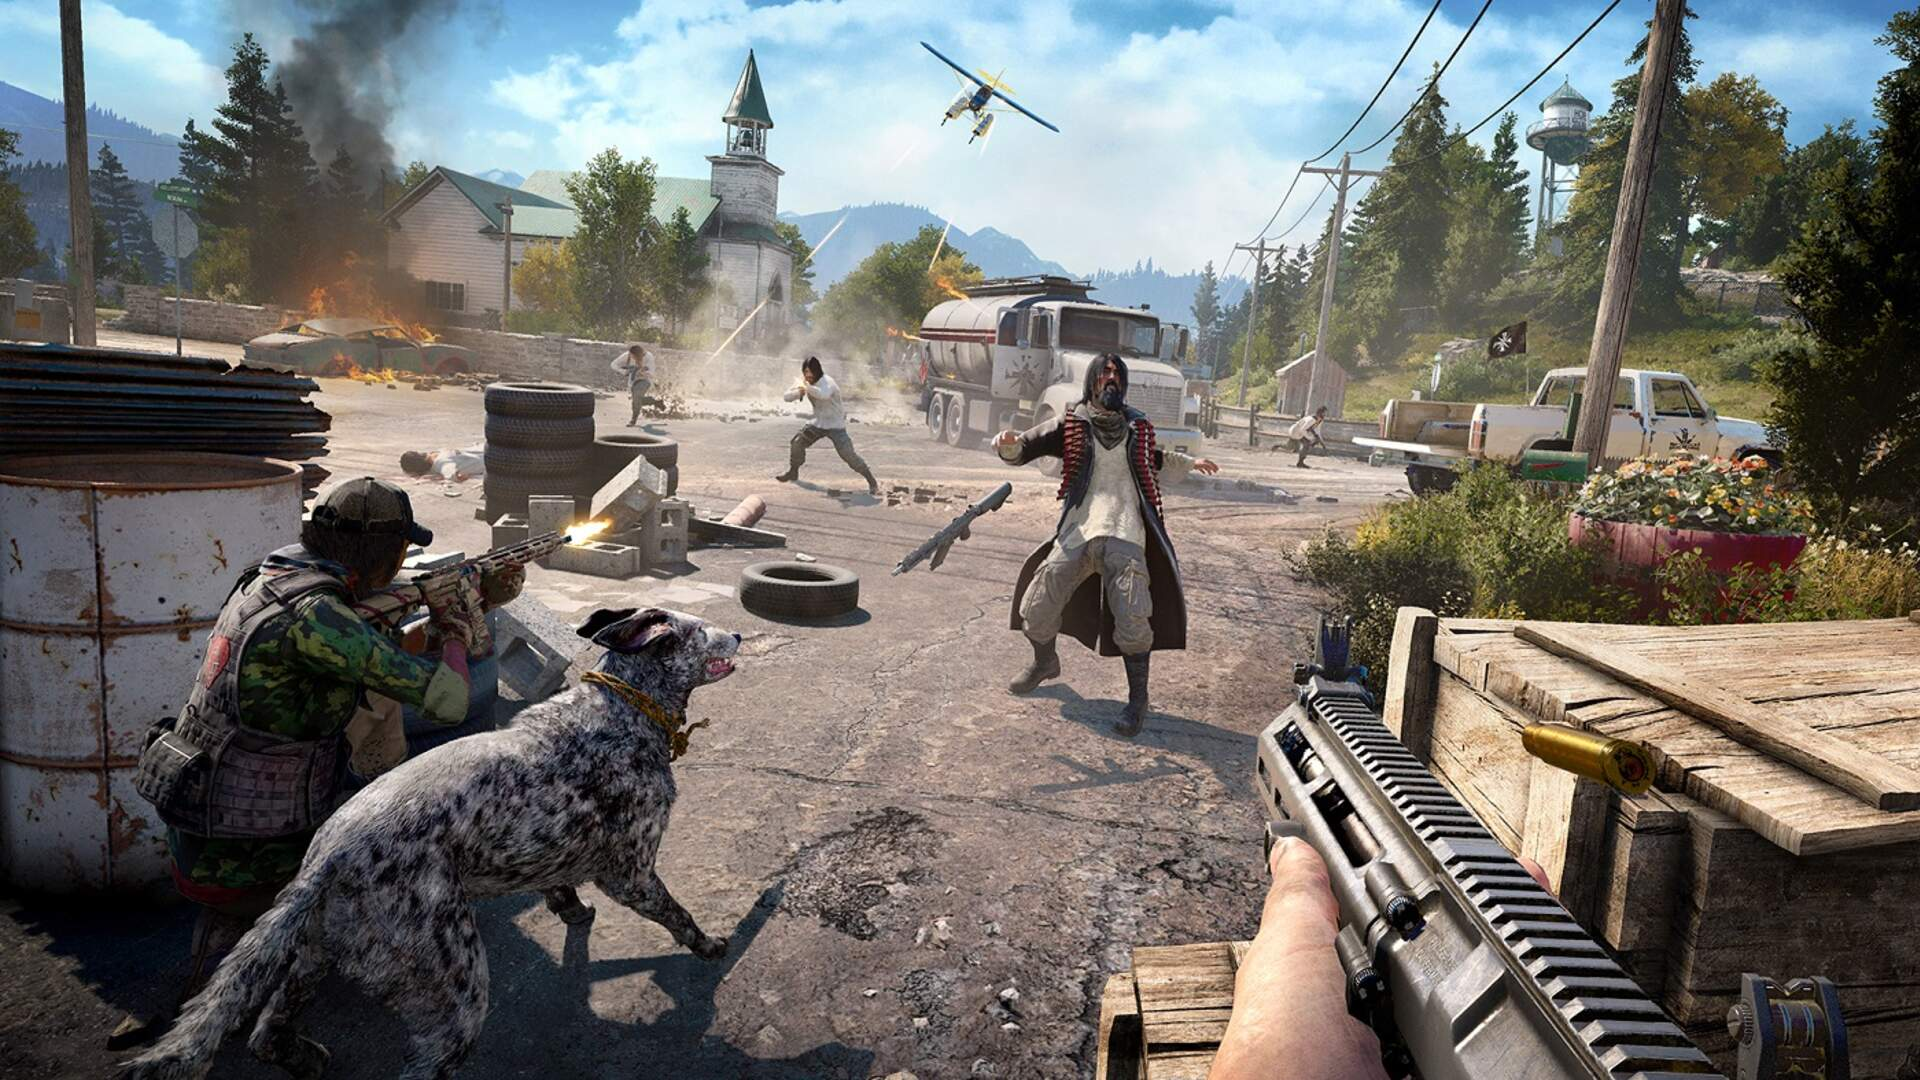 Far Cry 5 Includes Co-op Throughout the Main Story Campaign